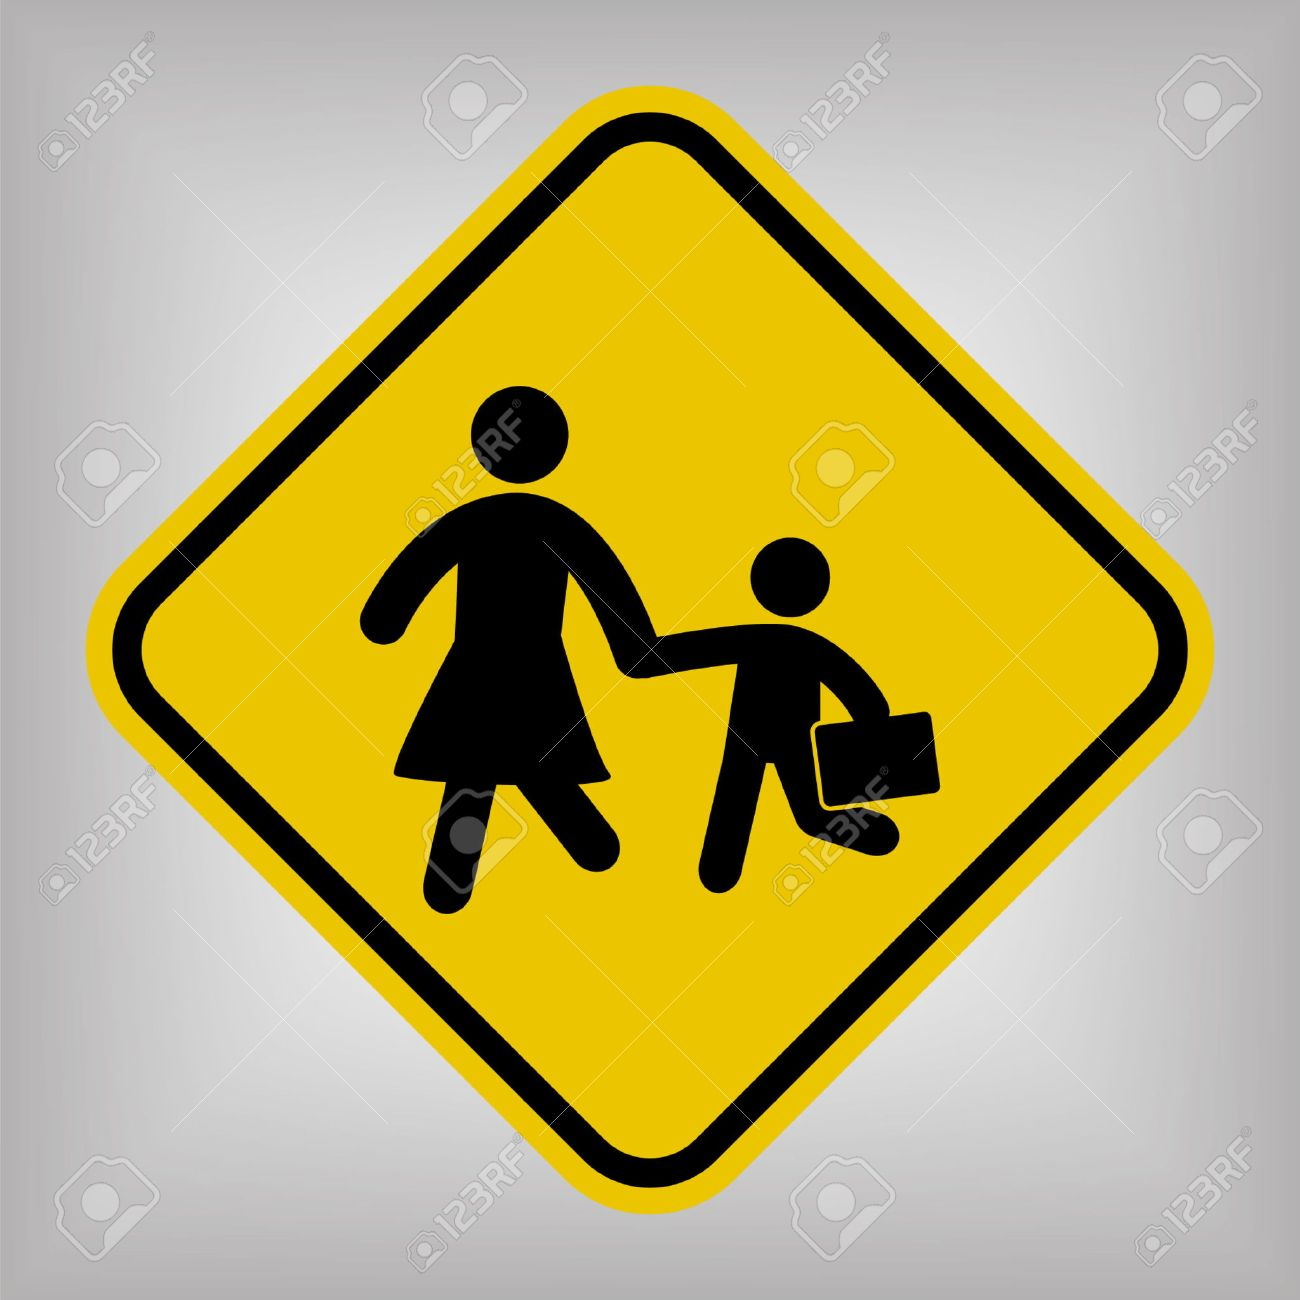 Traffic signs stock photos royalty free business images school sign biocorpaavc